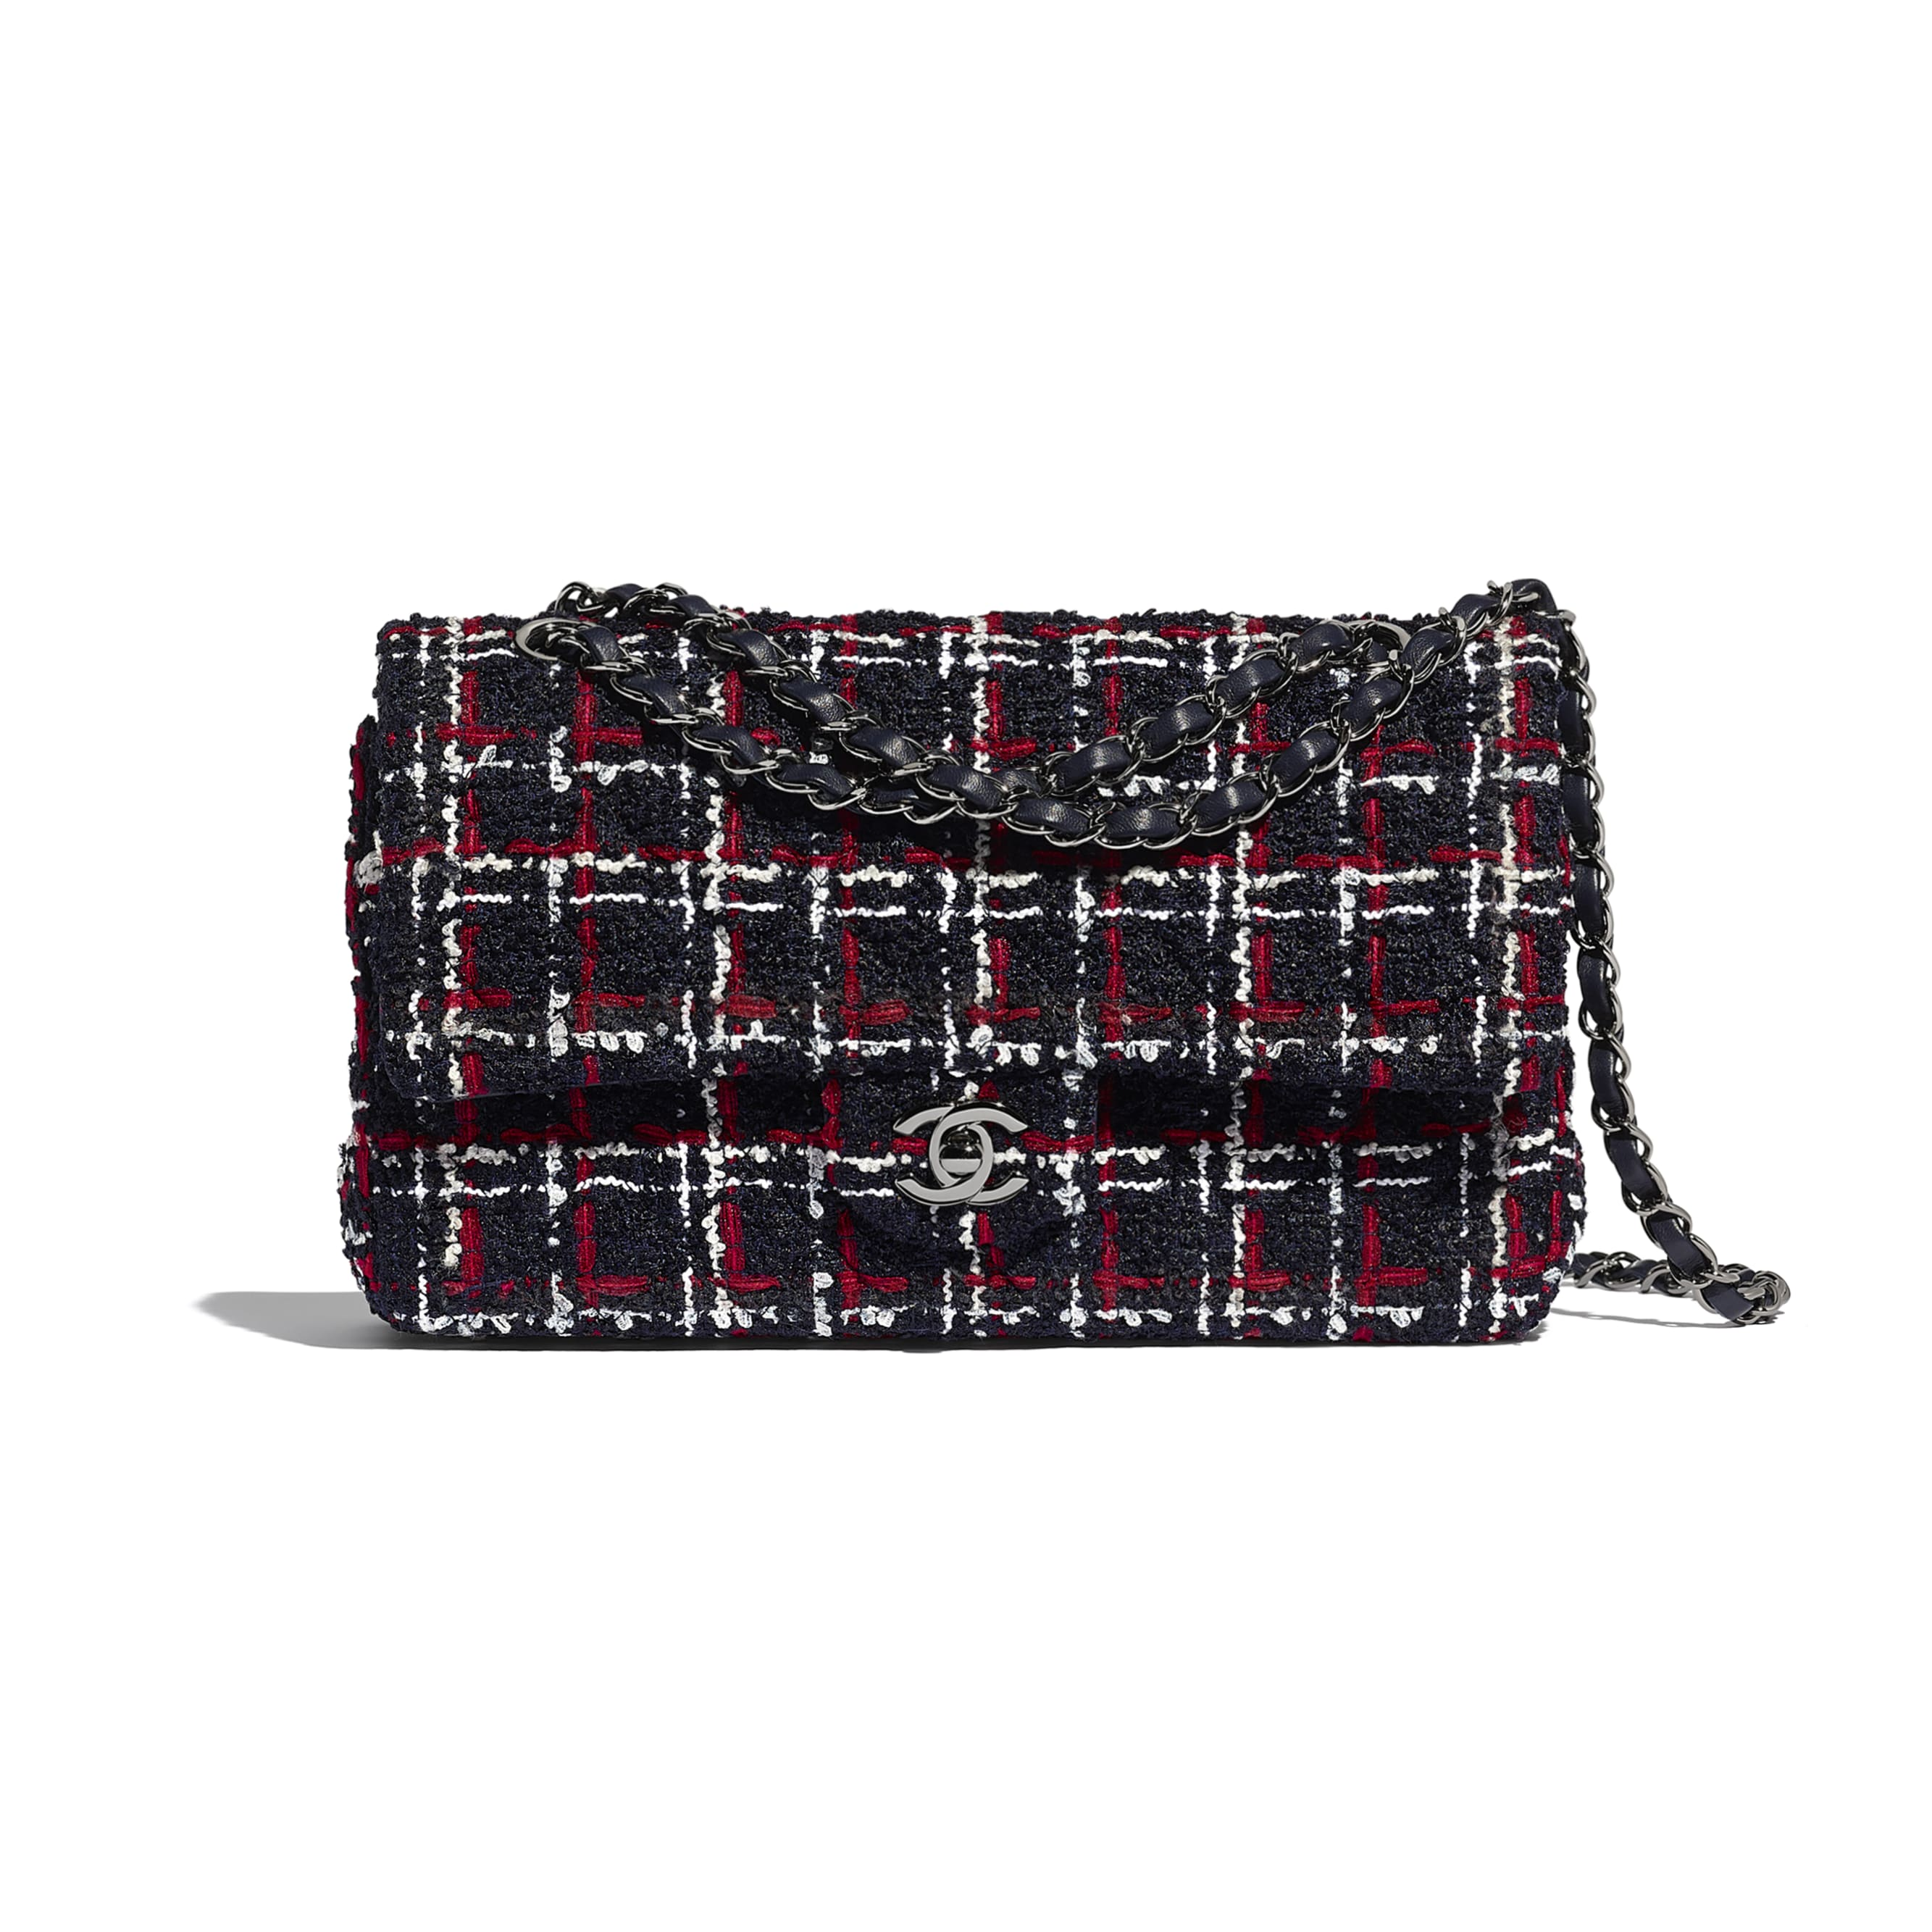 Classic Handbag - Navy Blue, White & Red - Tweed & Ruthenium-Finish Metal - CHANEL - Default view - see standard sized version